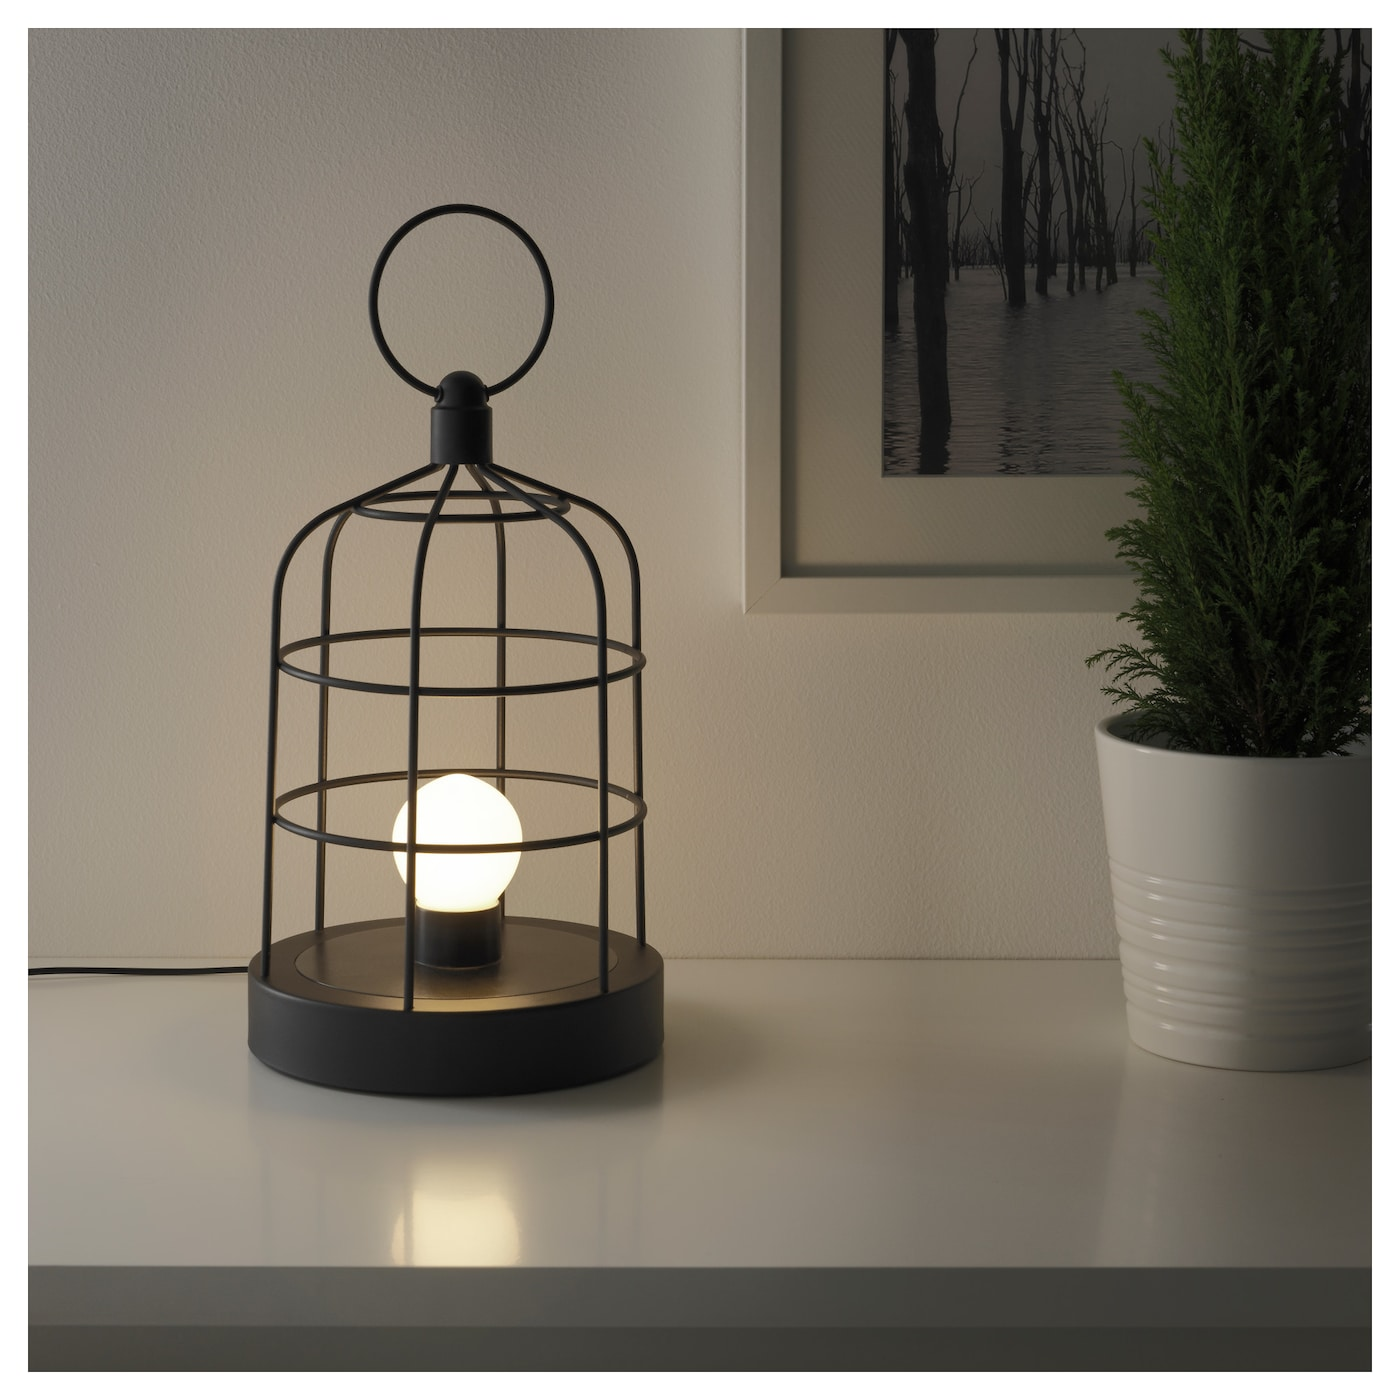 IKEA STRÅLA LED lantern Gives a warm, cosy glow and spreads the holiday atmosphere in your home.